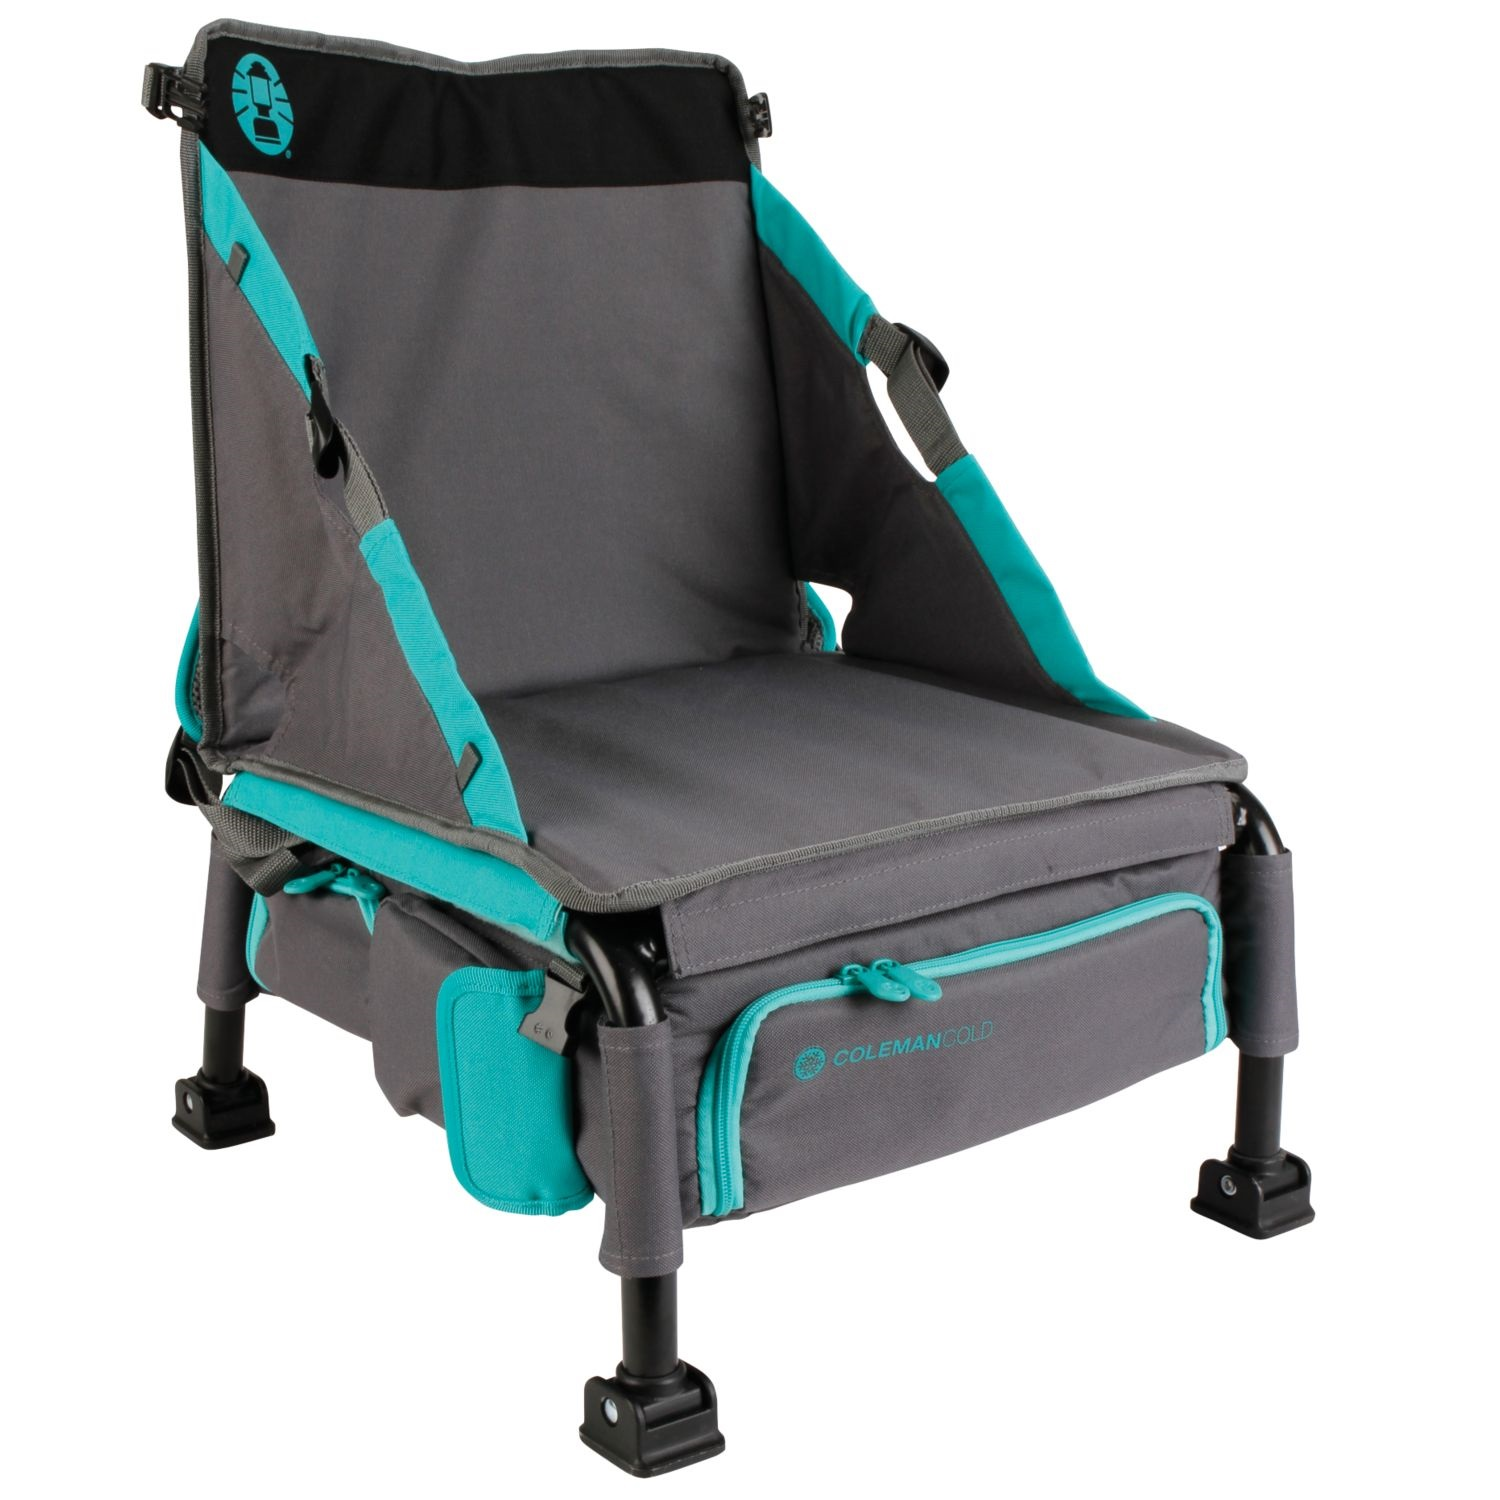 vision fishing chair folding seat covers coleman treklite plus coolerpack teal